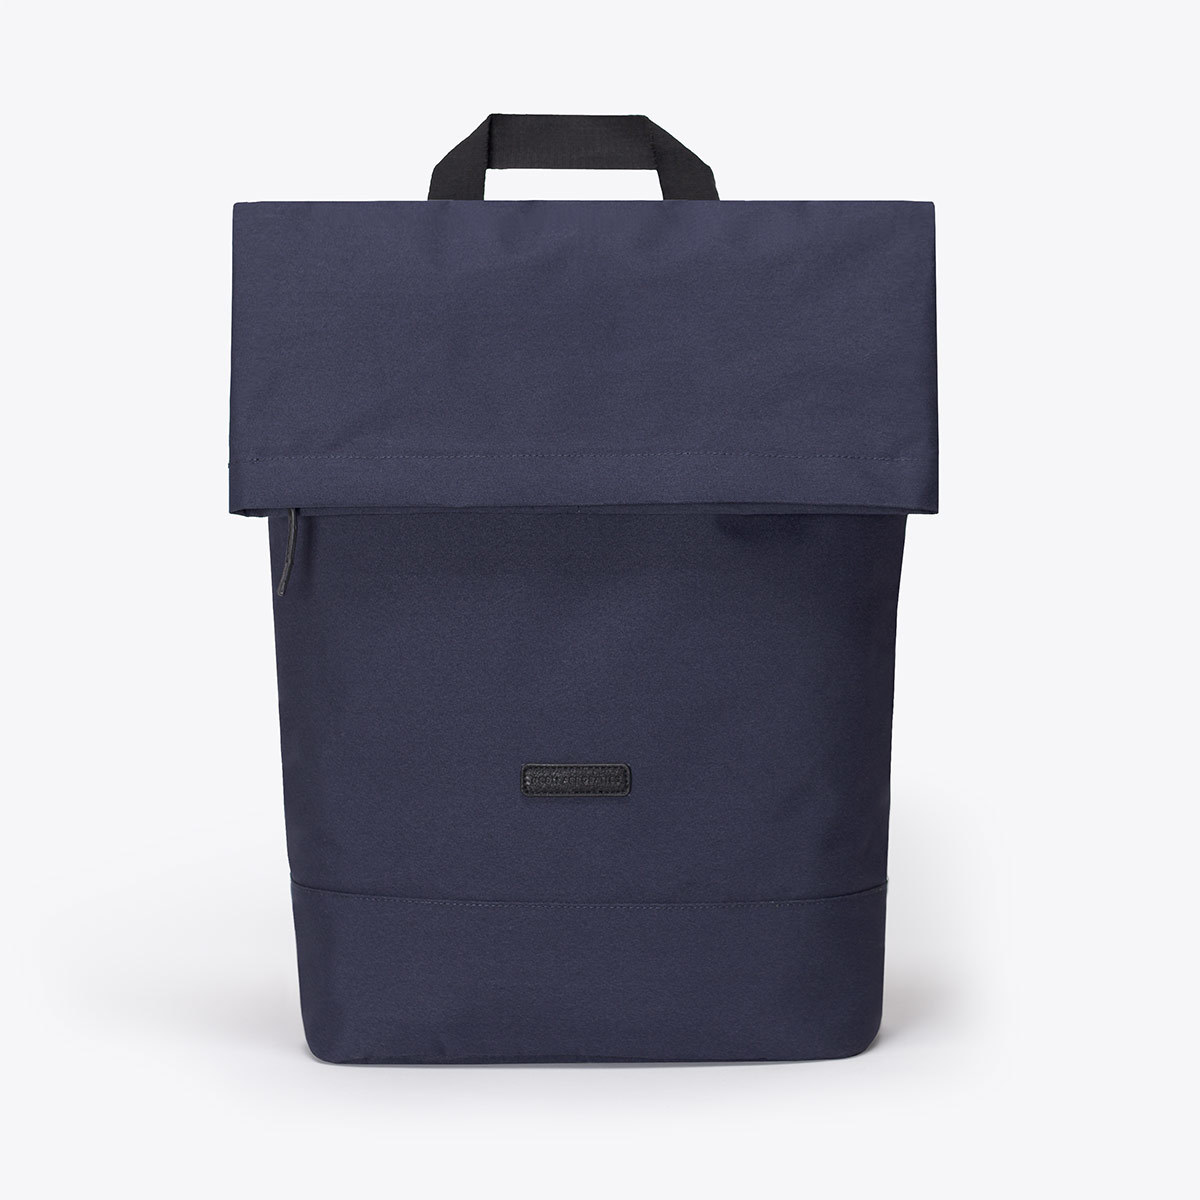 UA_Karlo-Backpack_Stealth-Series_Dark-Navy_01.jpg